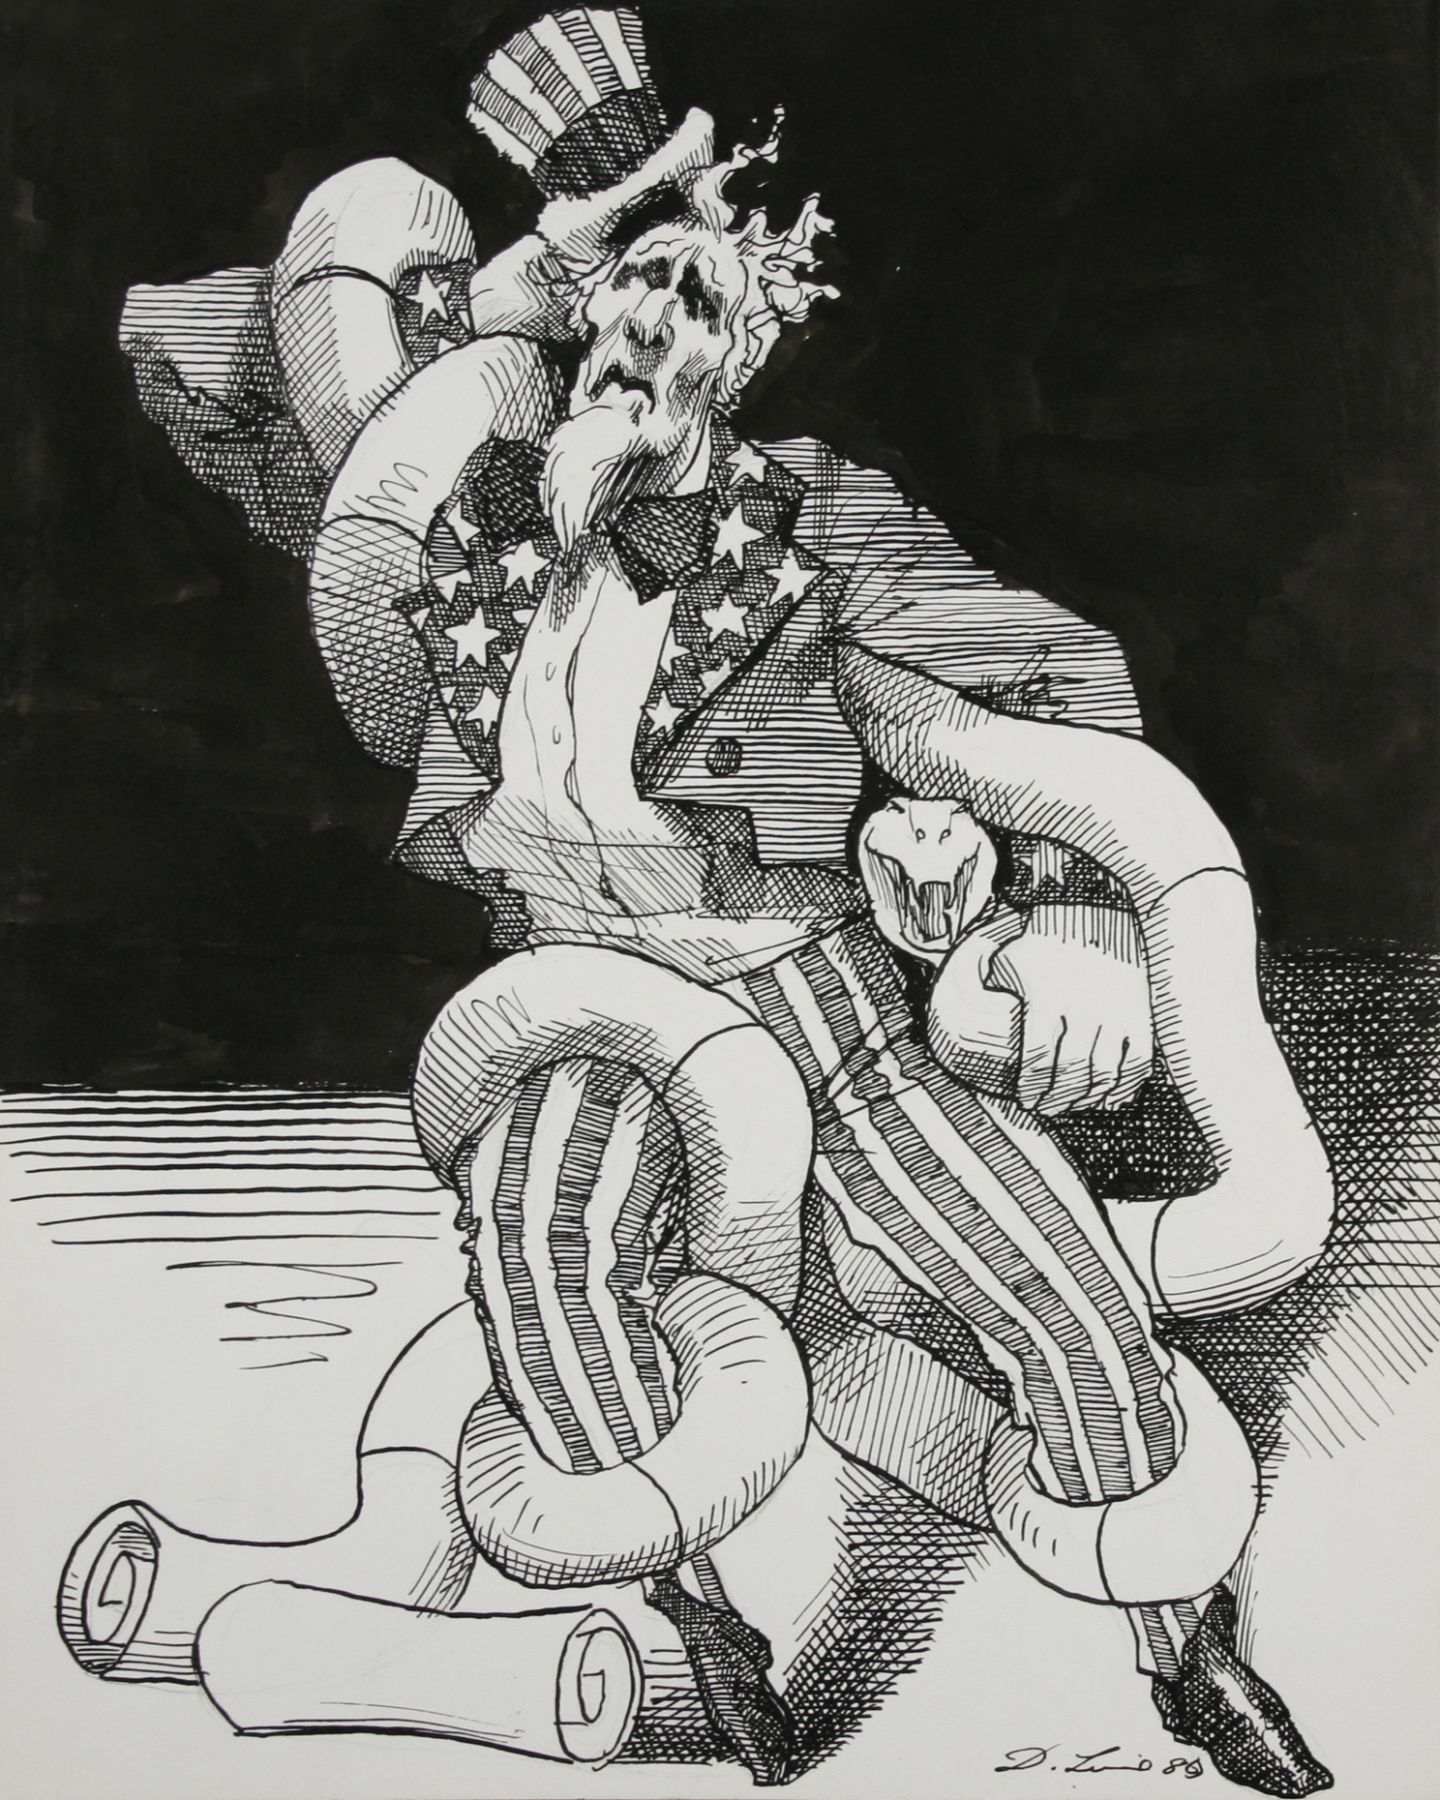 David Levine, Uncle Sam, 1980, ink on paper, 13 3/4 x 11 inches